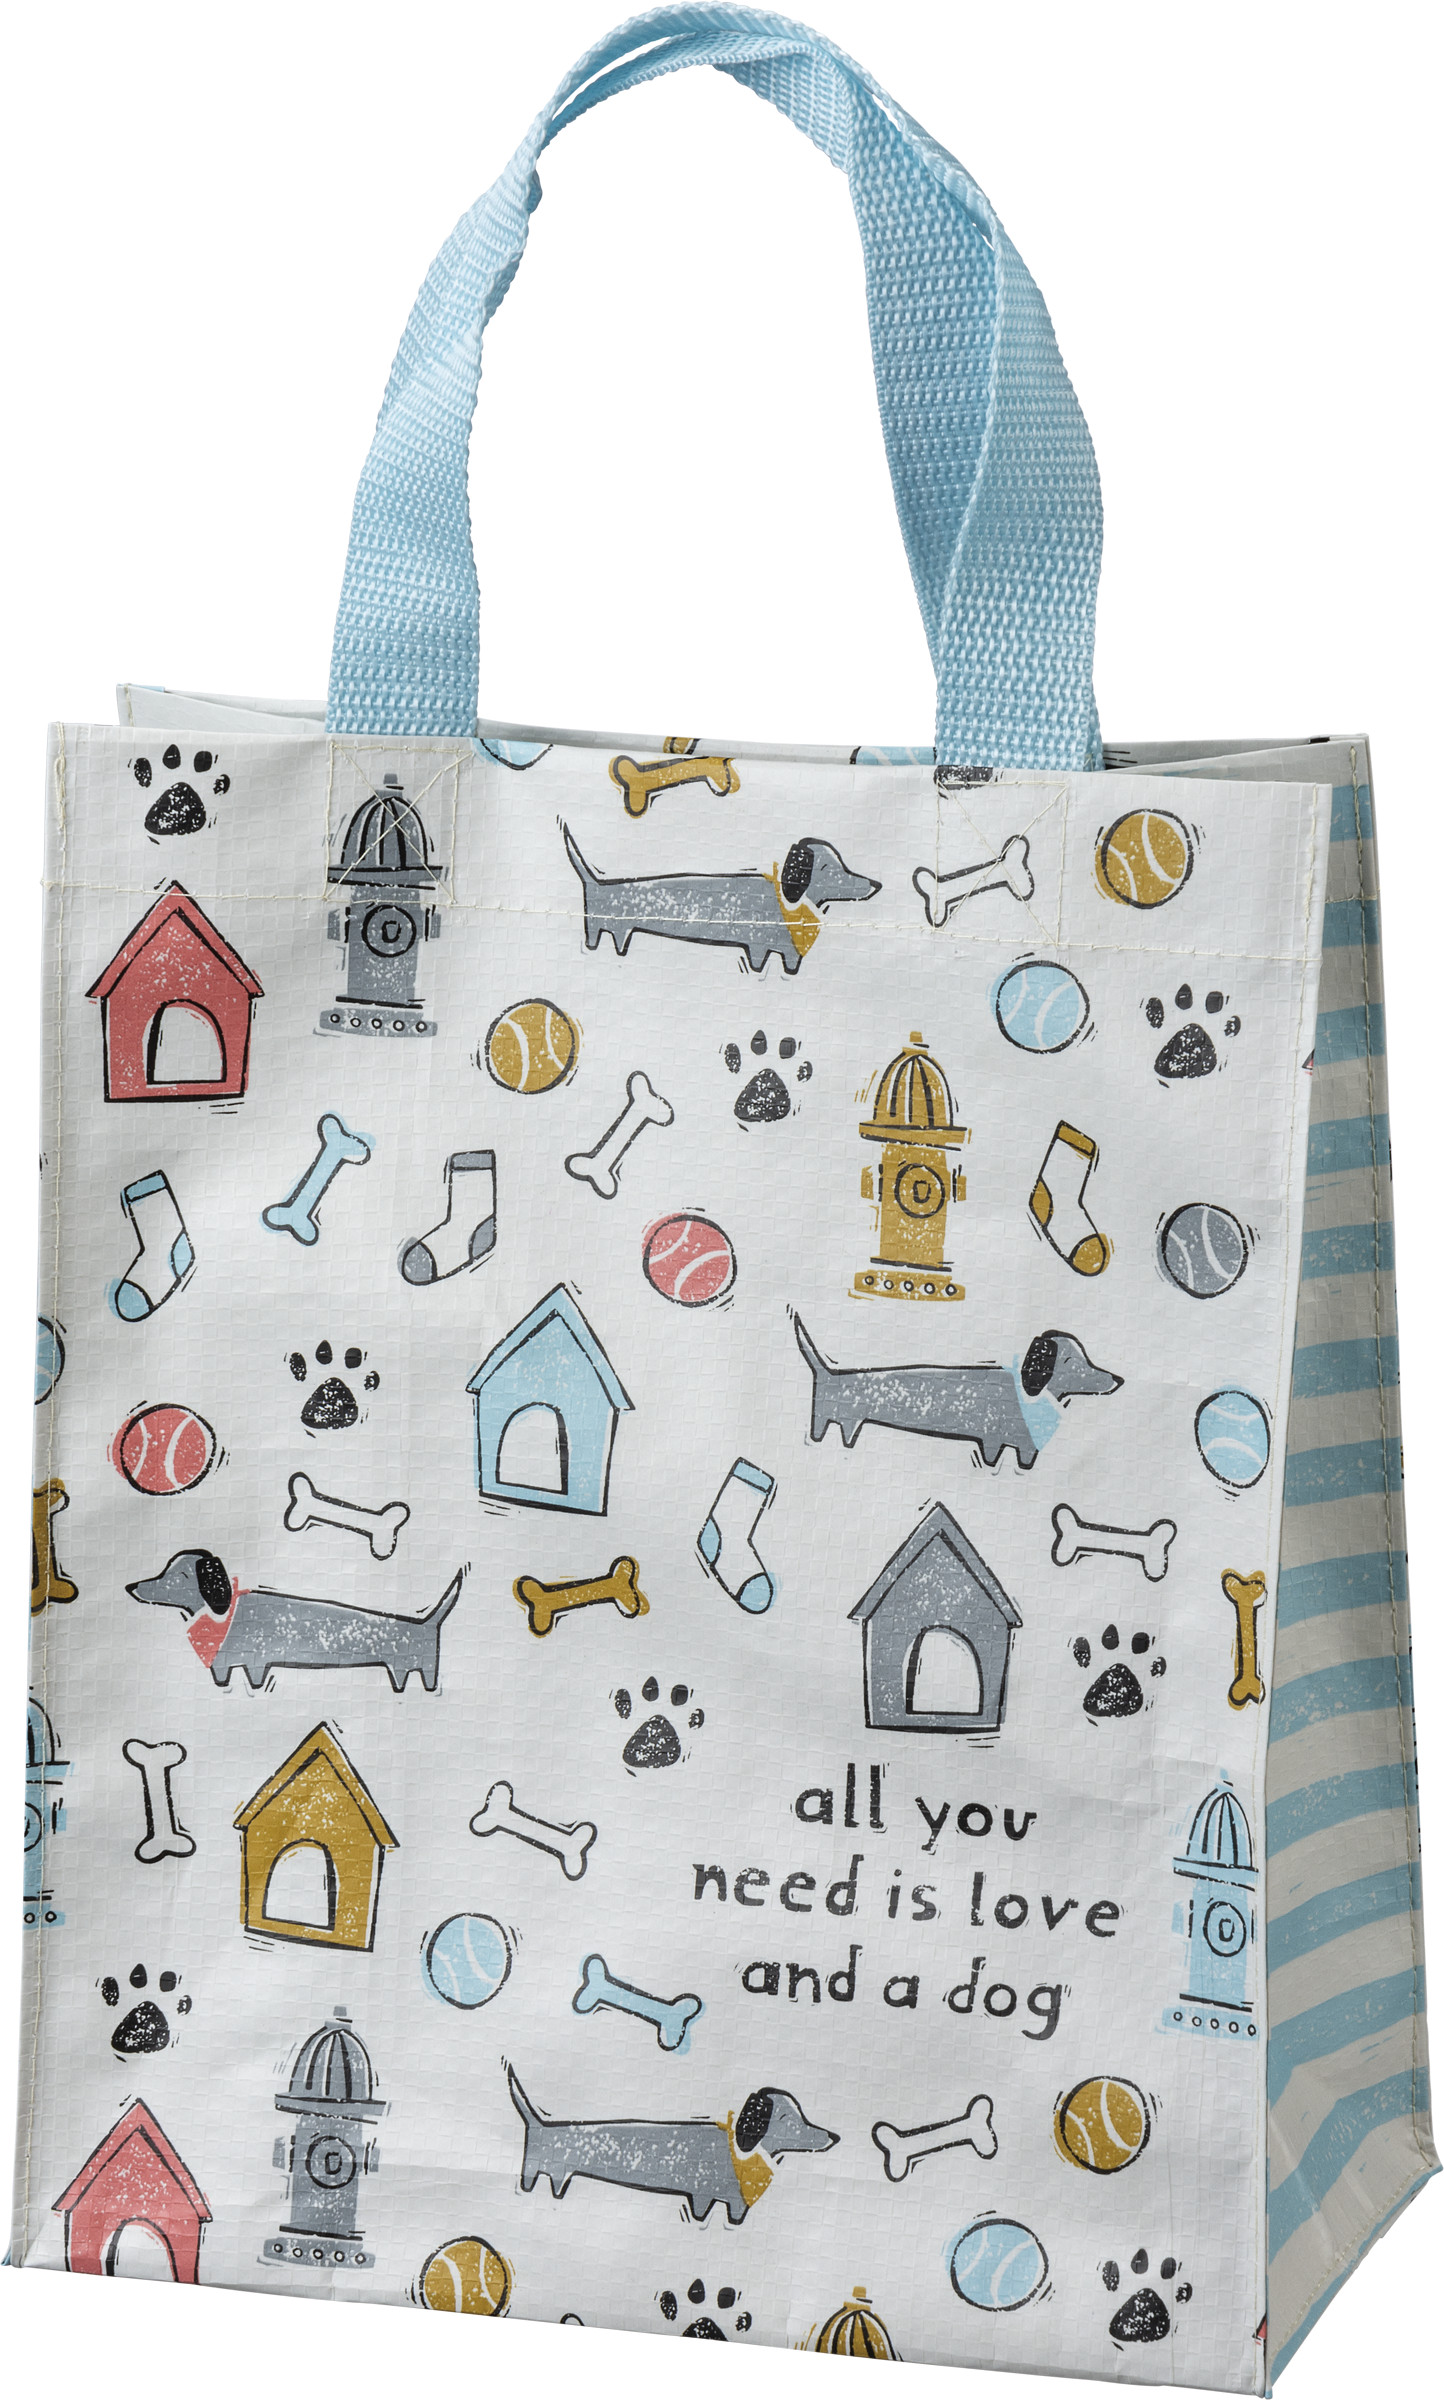 All You Need is Love and a Dog Tote Bag